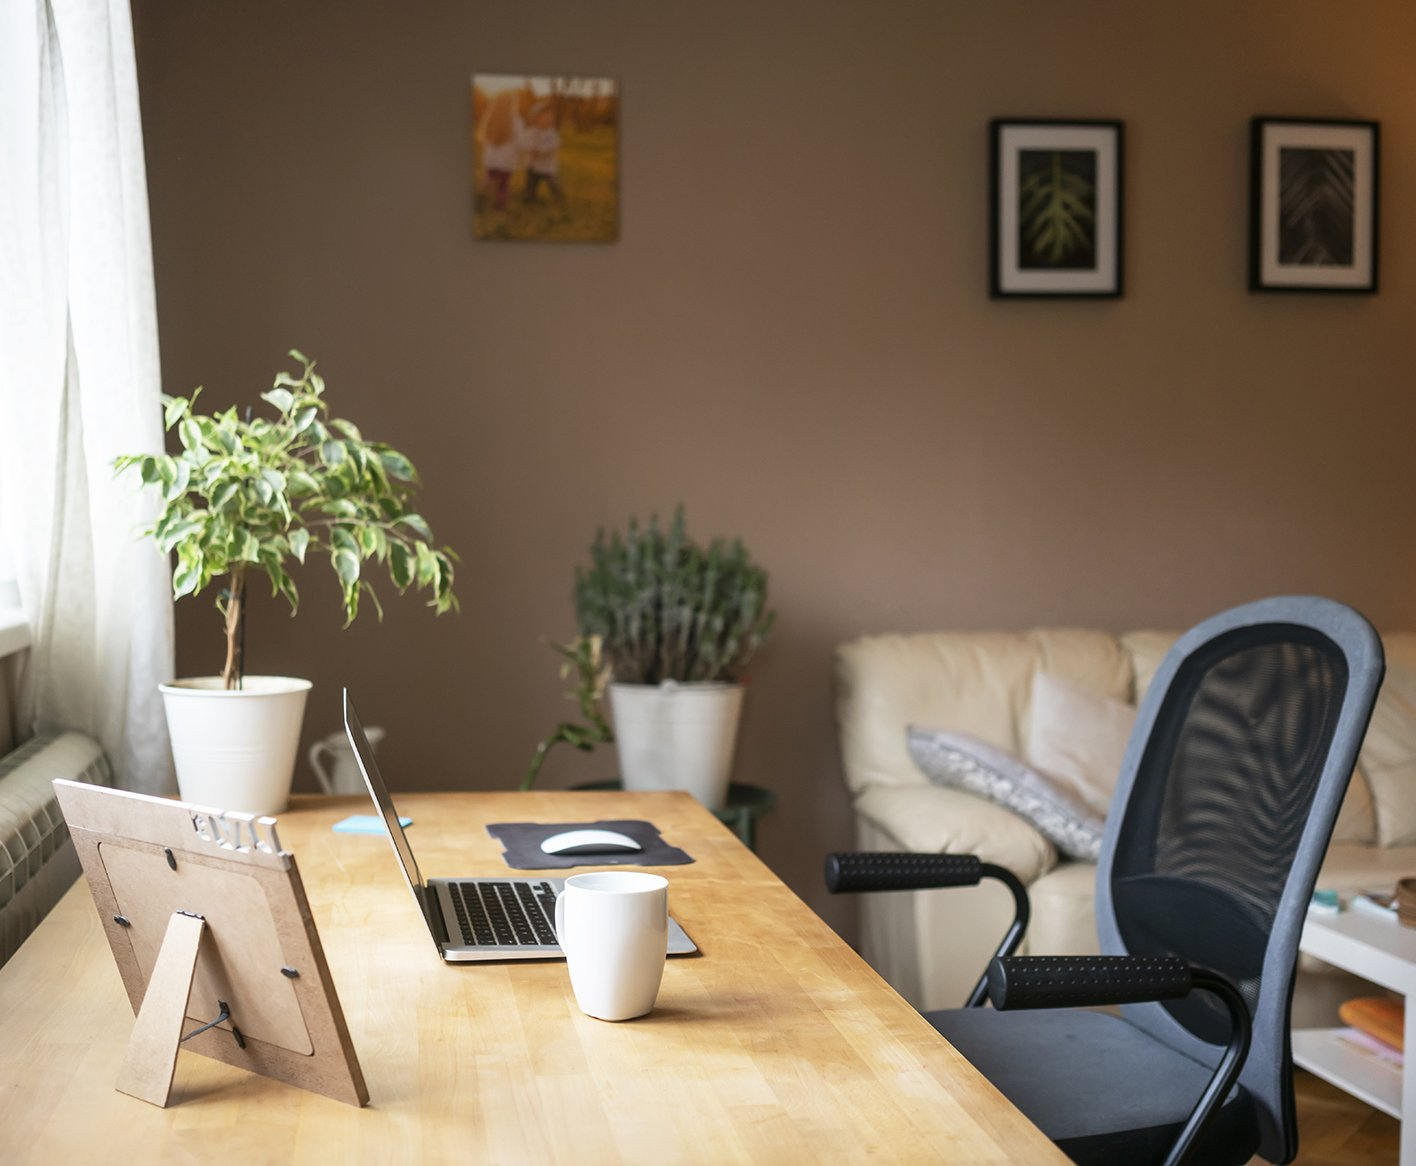 desk chair and laptop on a desk in a home office space